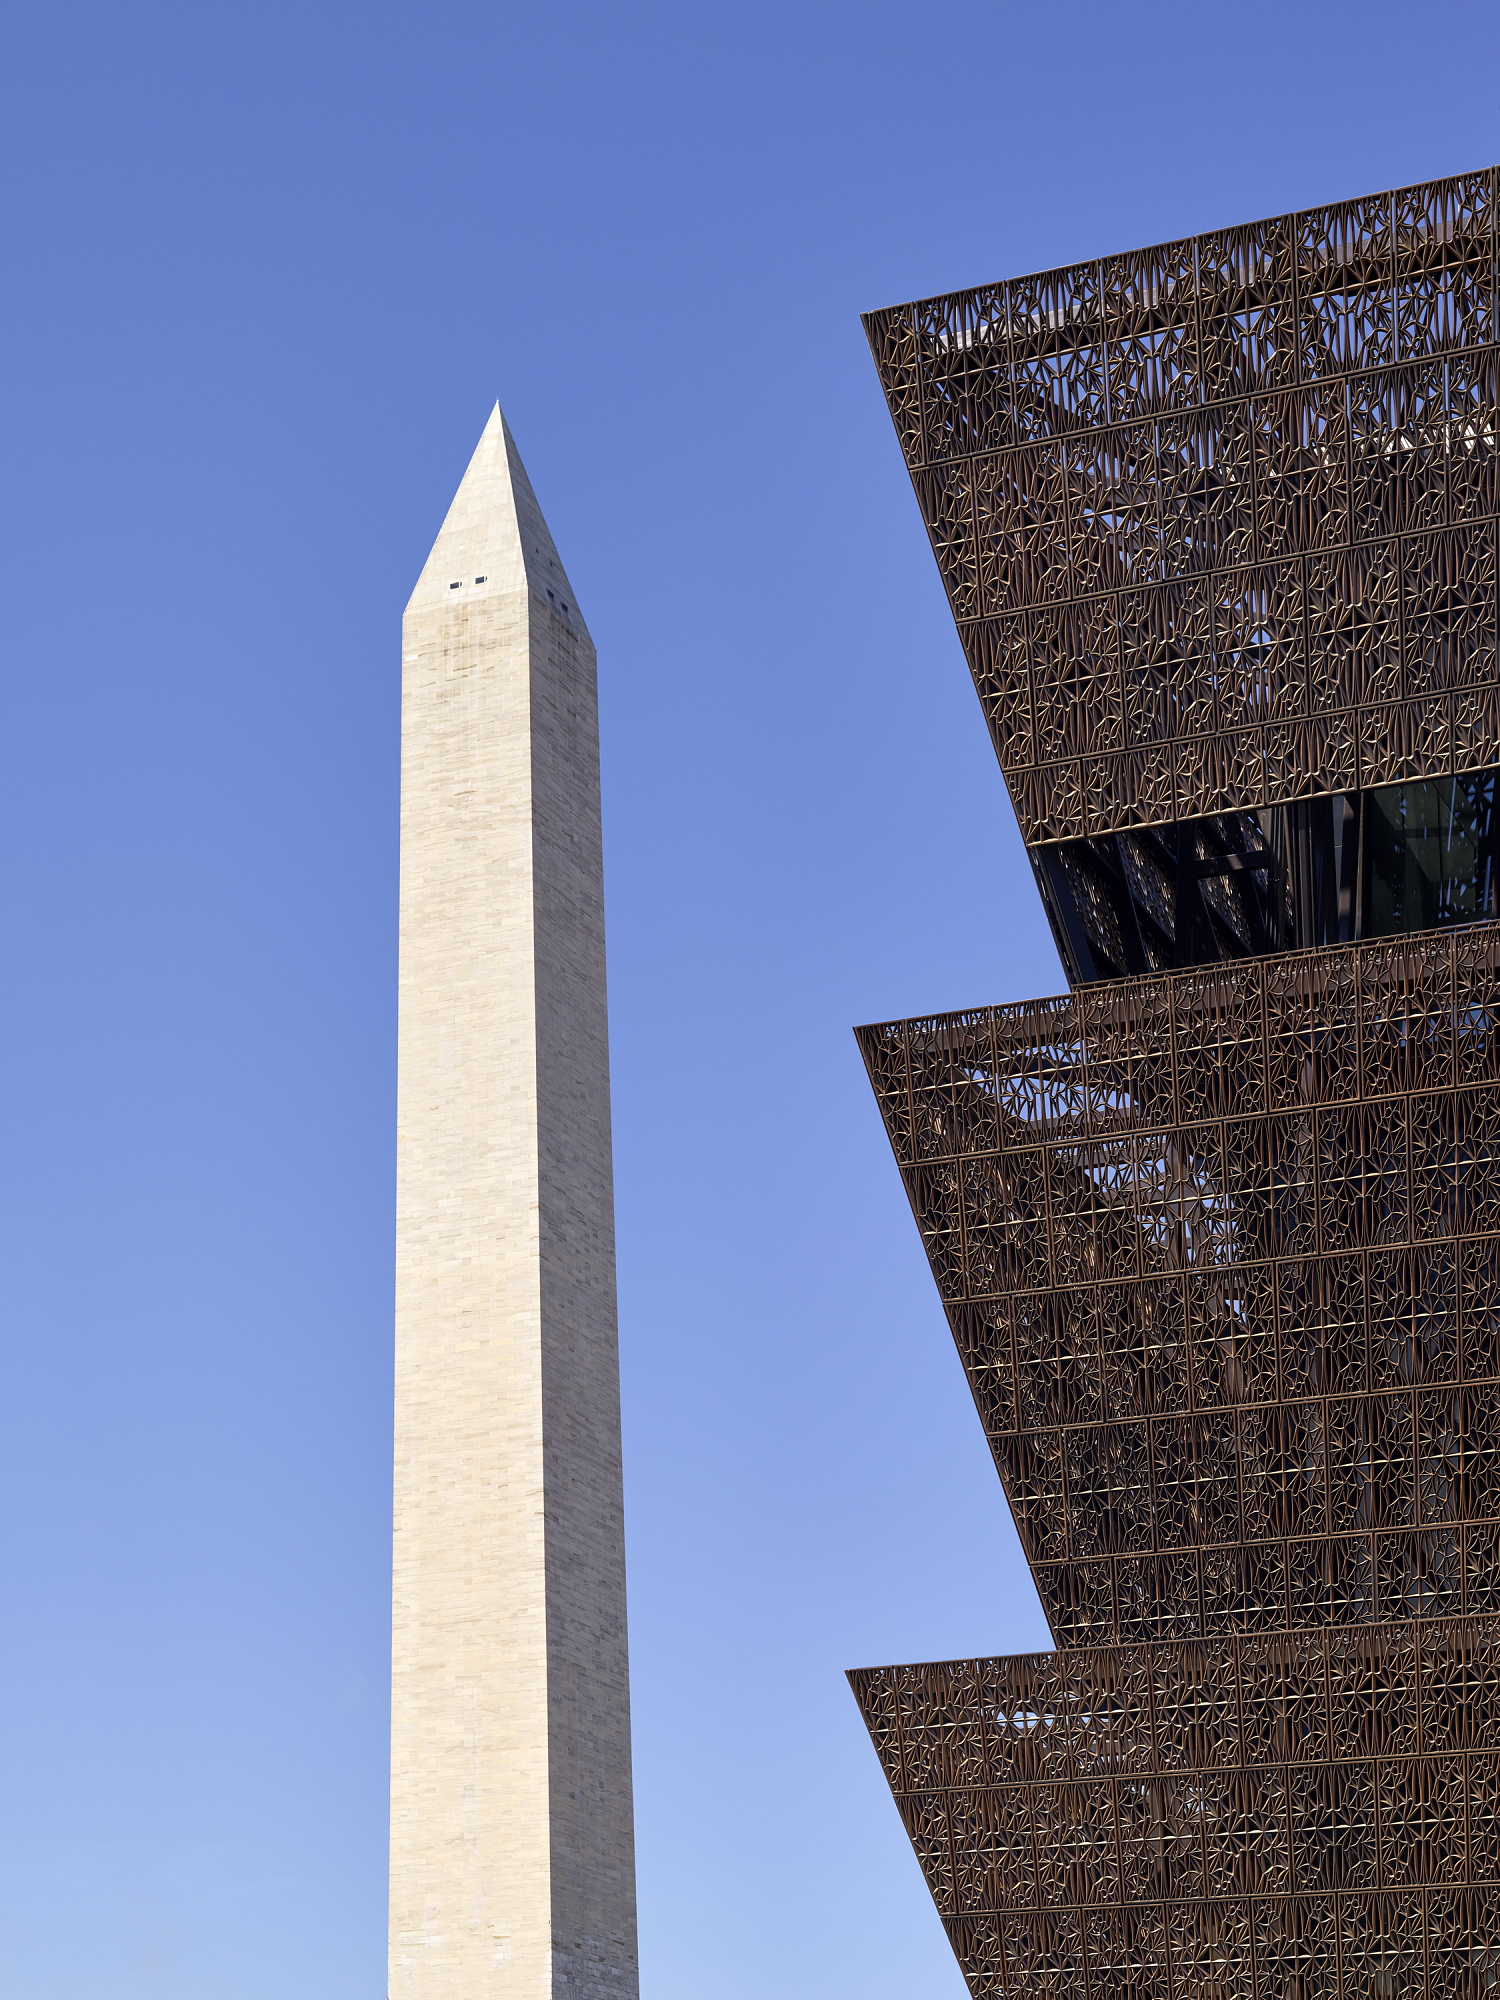 Washington Monument and NMAAHC